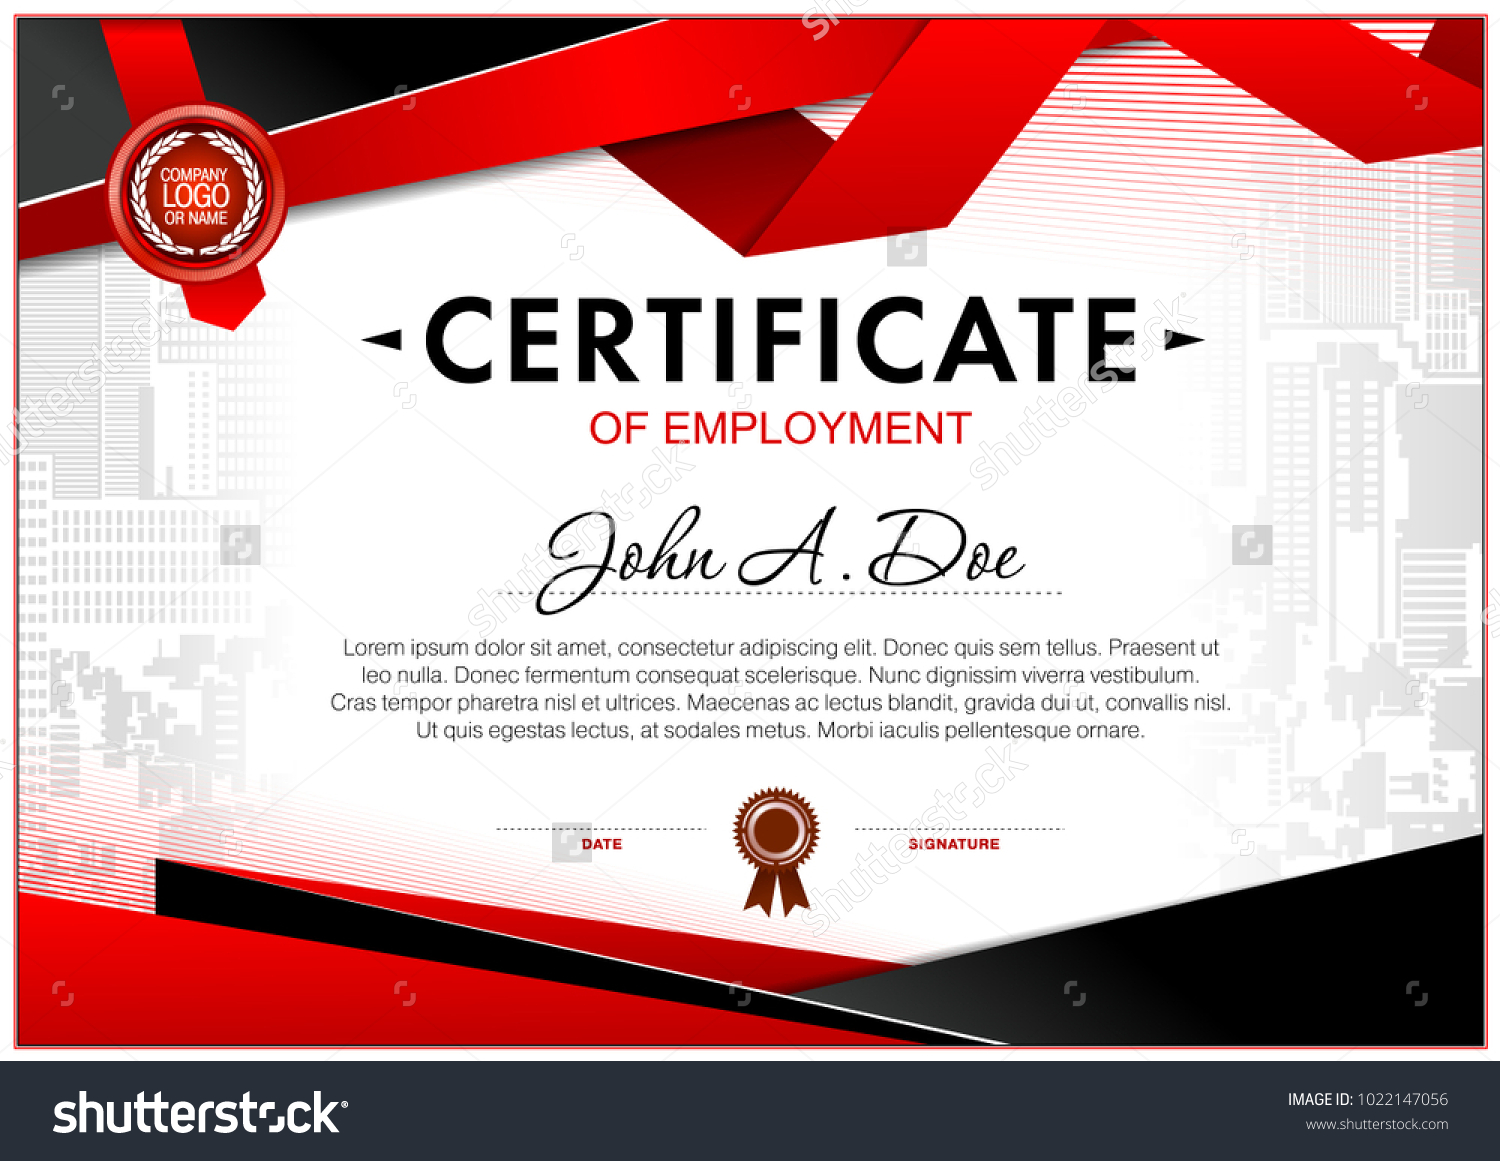 Certificate employment template geometrical simple shapes certificate employment template geometrical simple shapes 1022147056 shutterstock yelopaper Gallery